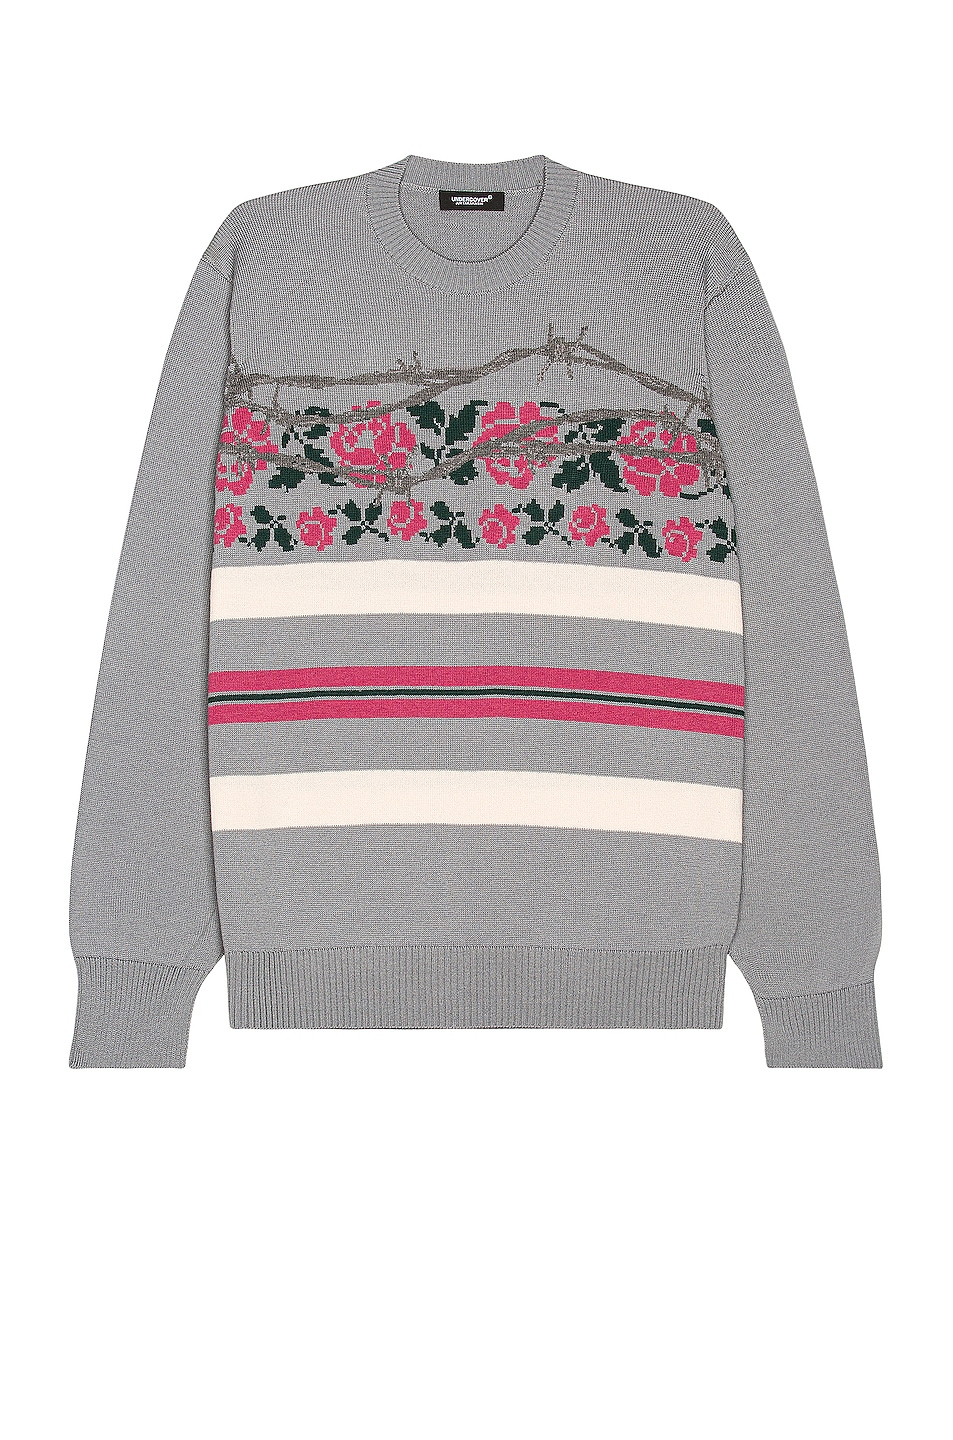 Image 1 of Undercover Sweater in Gray